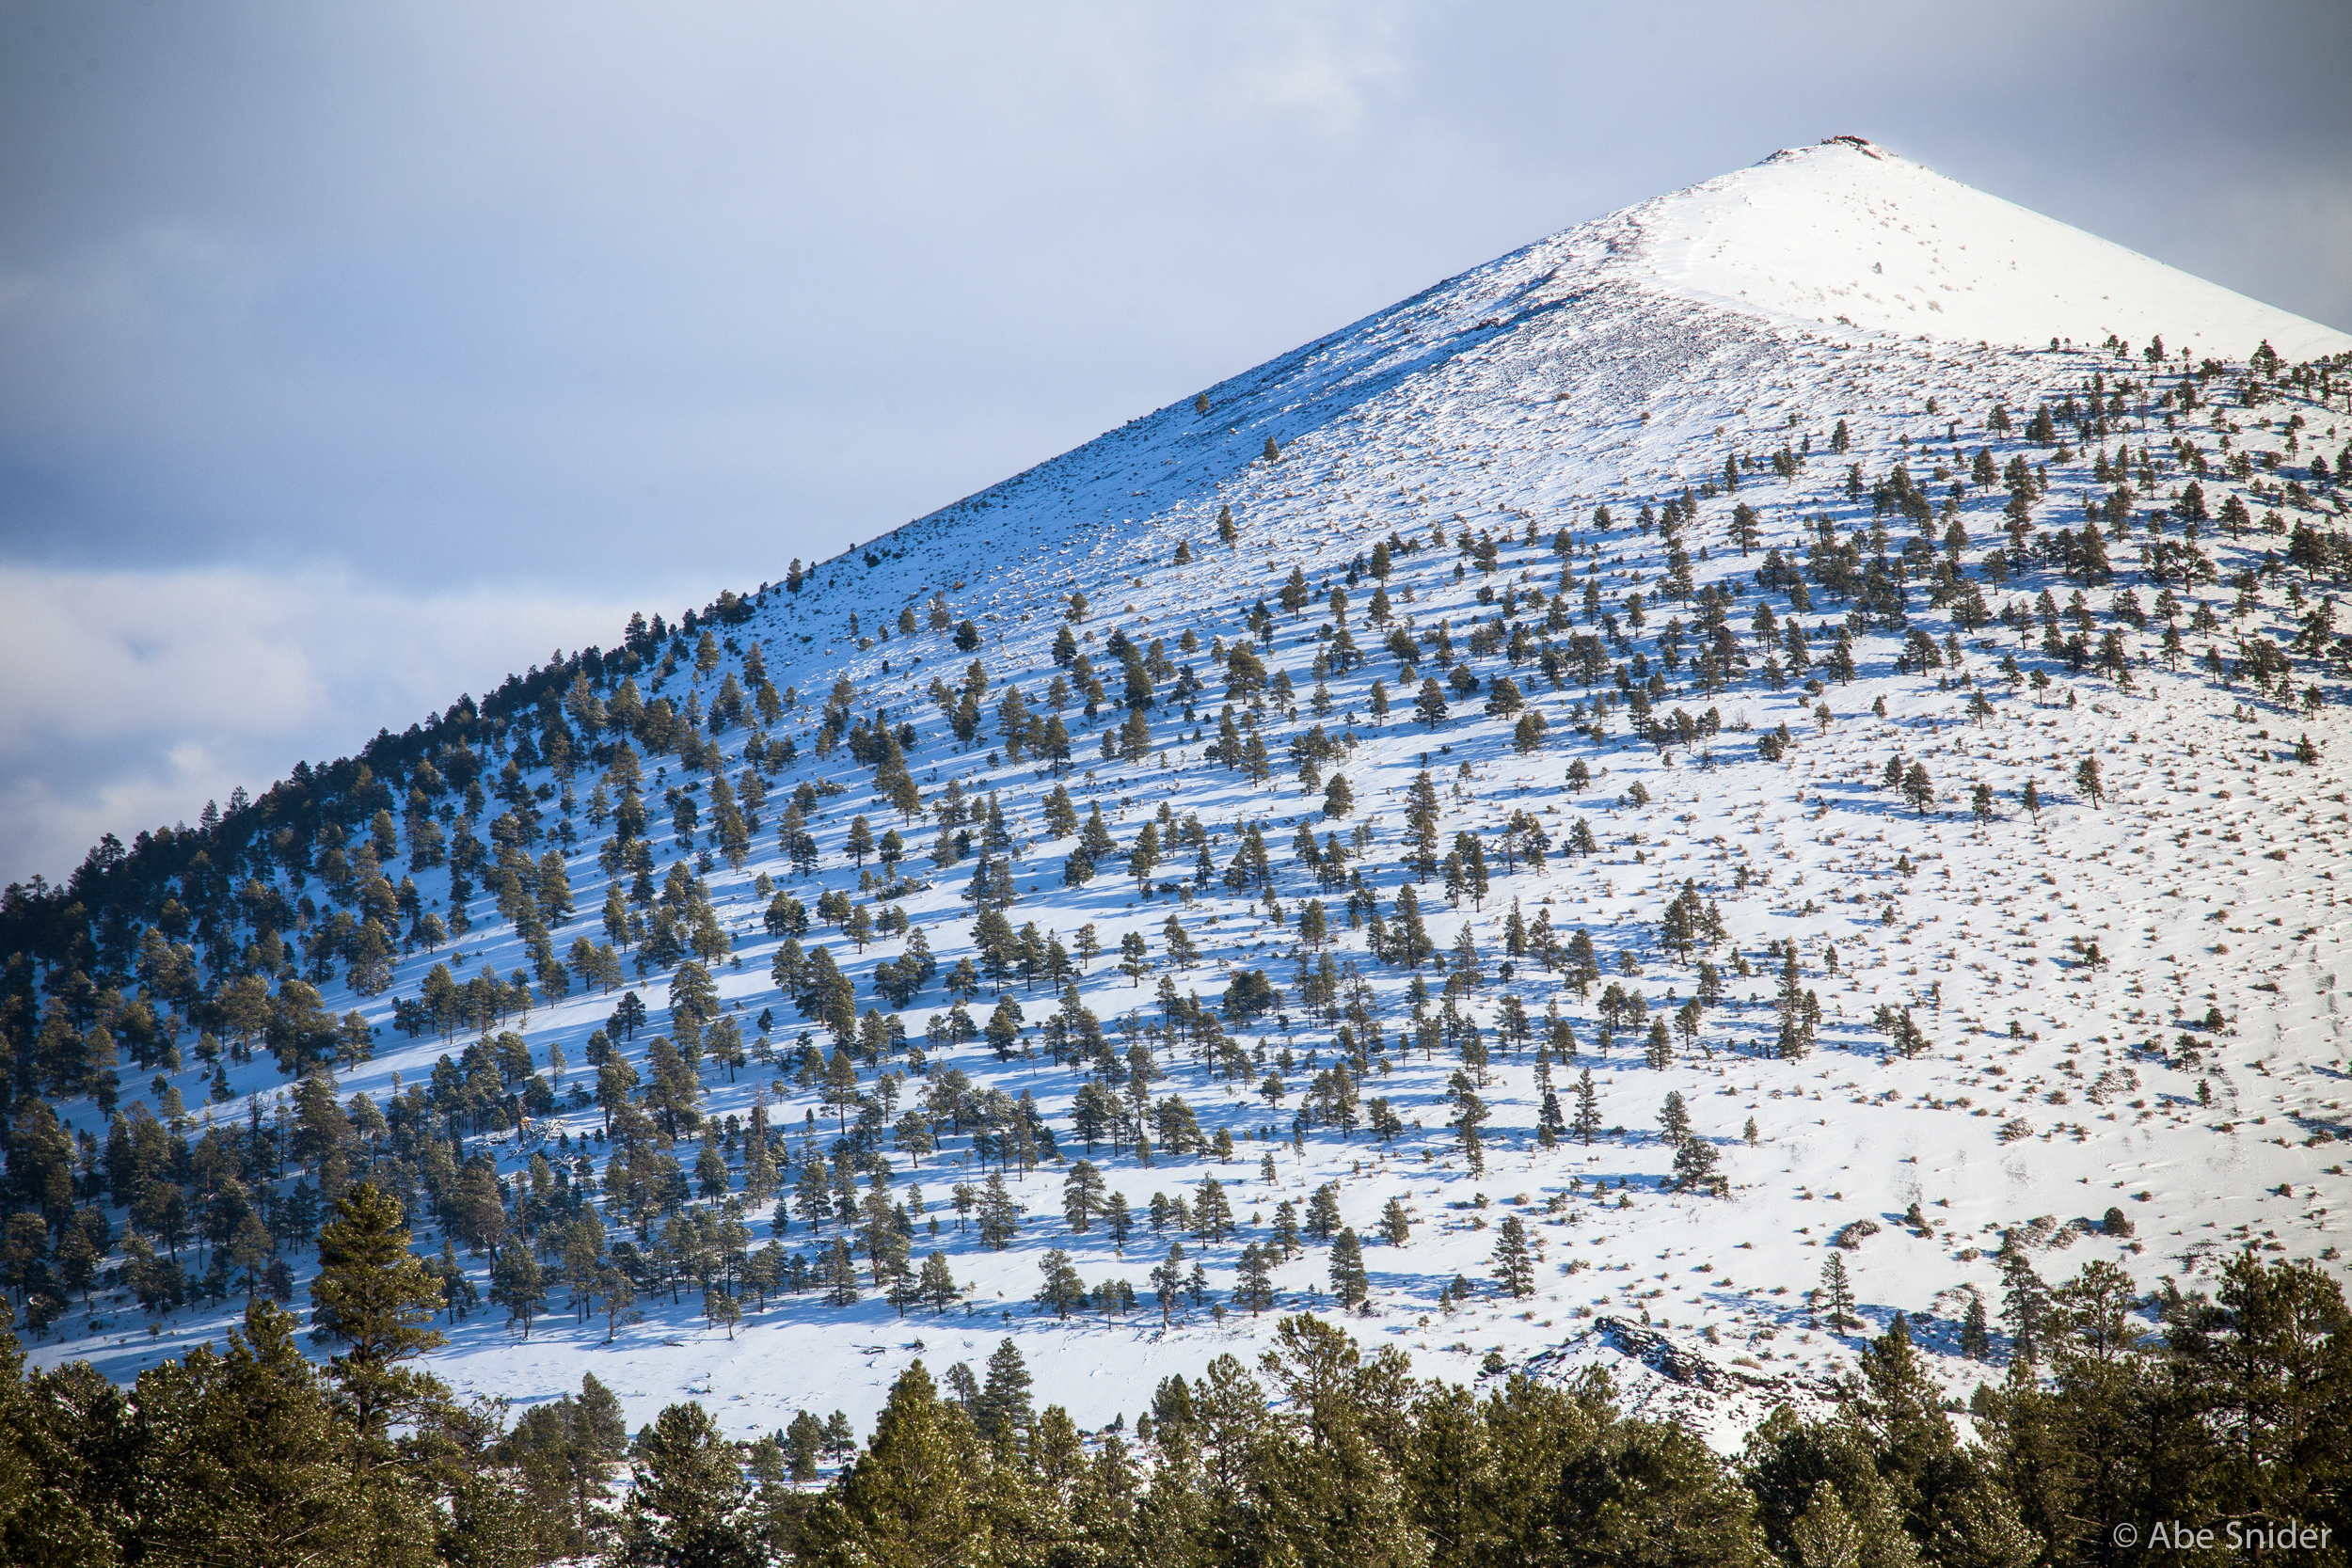 Sunset Crater - Winter